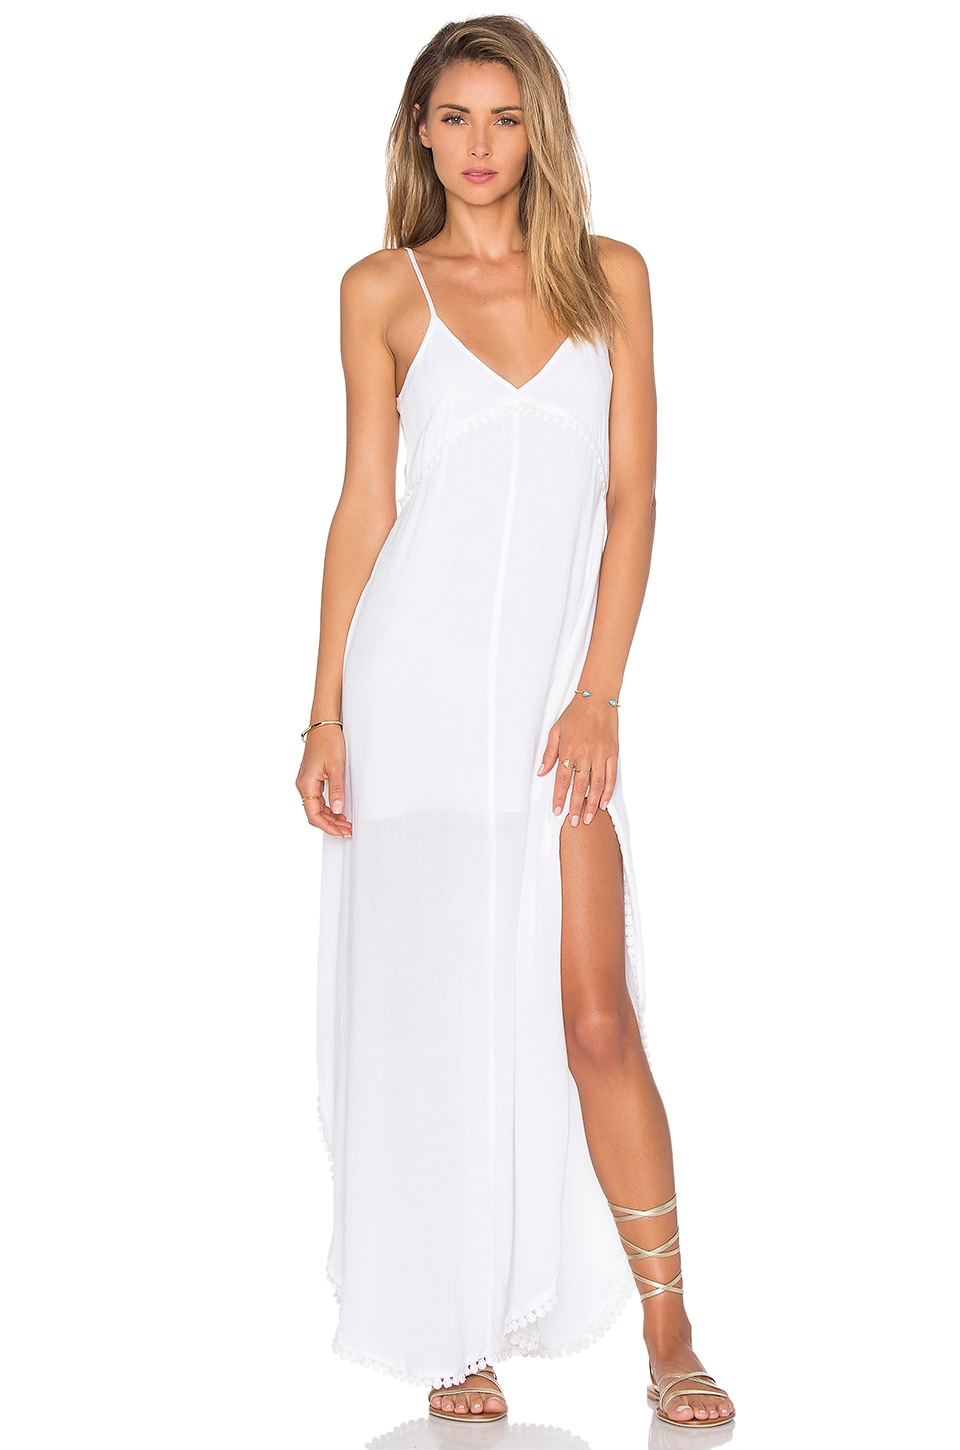 Lovers + Friends Curacao Slip Dress in Ivory